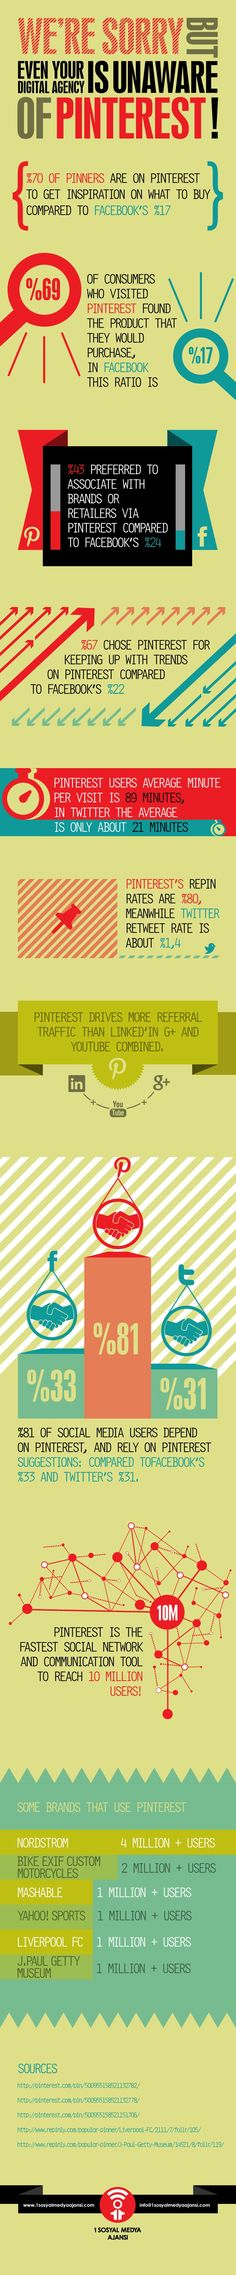 We're sorry but even your digital agency is unaware of #Pinterest #infographic #ecommerce #conversion